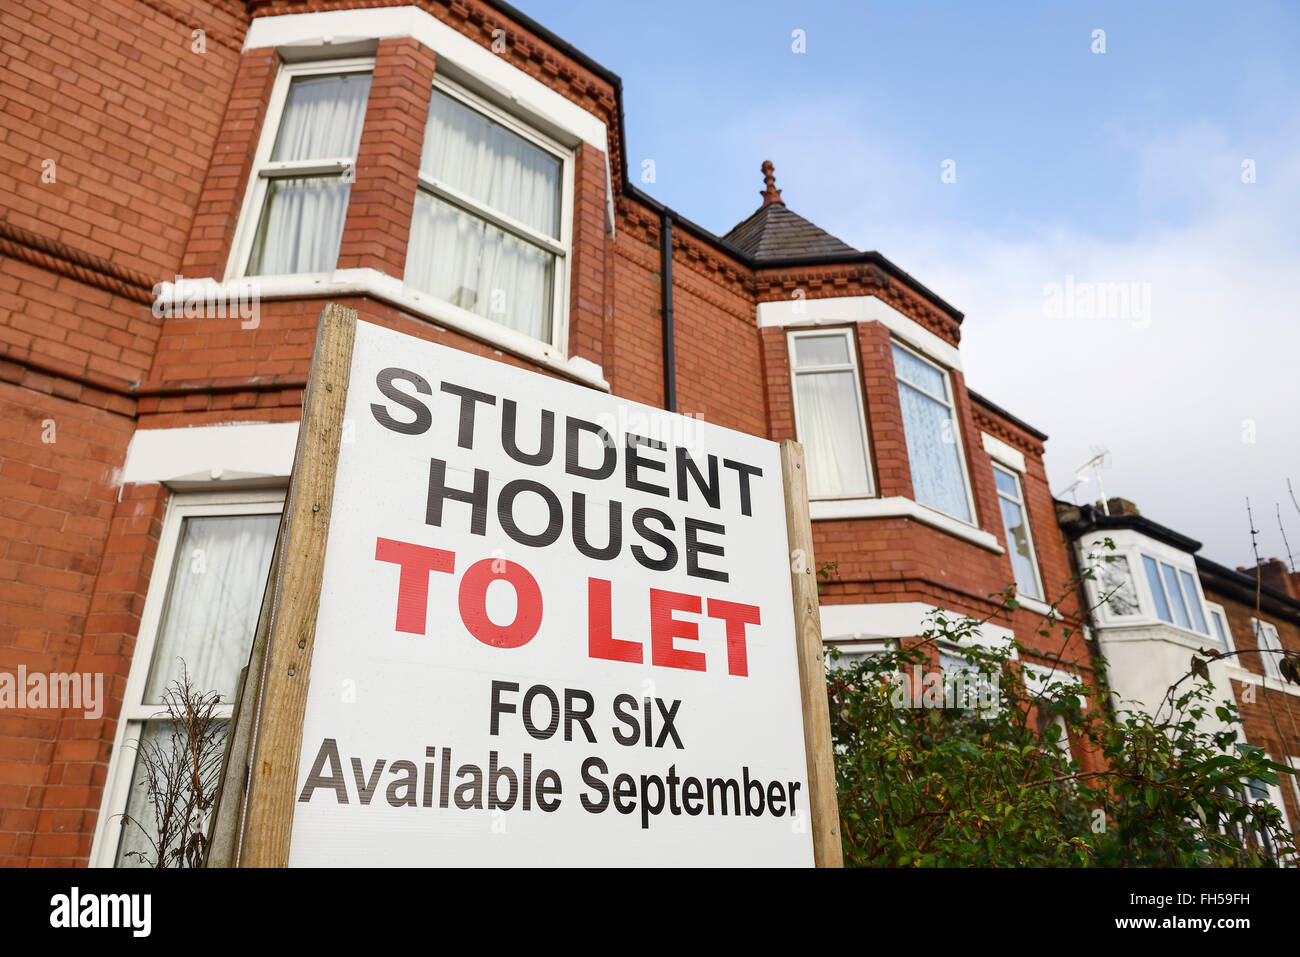 Student House To Let sign outside a house - Stock Image